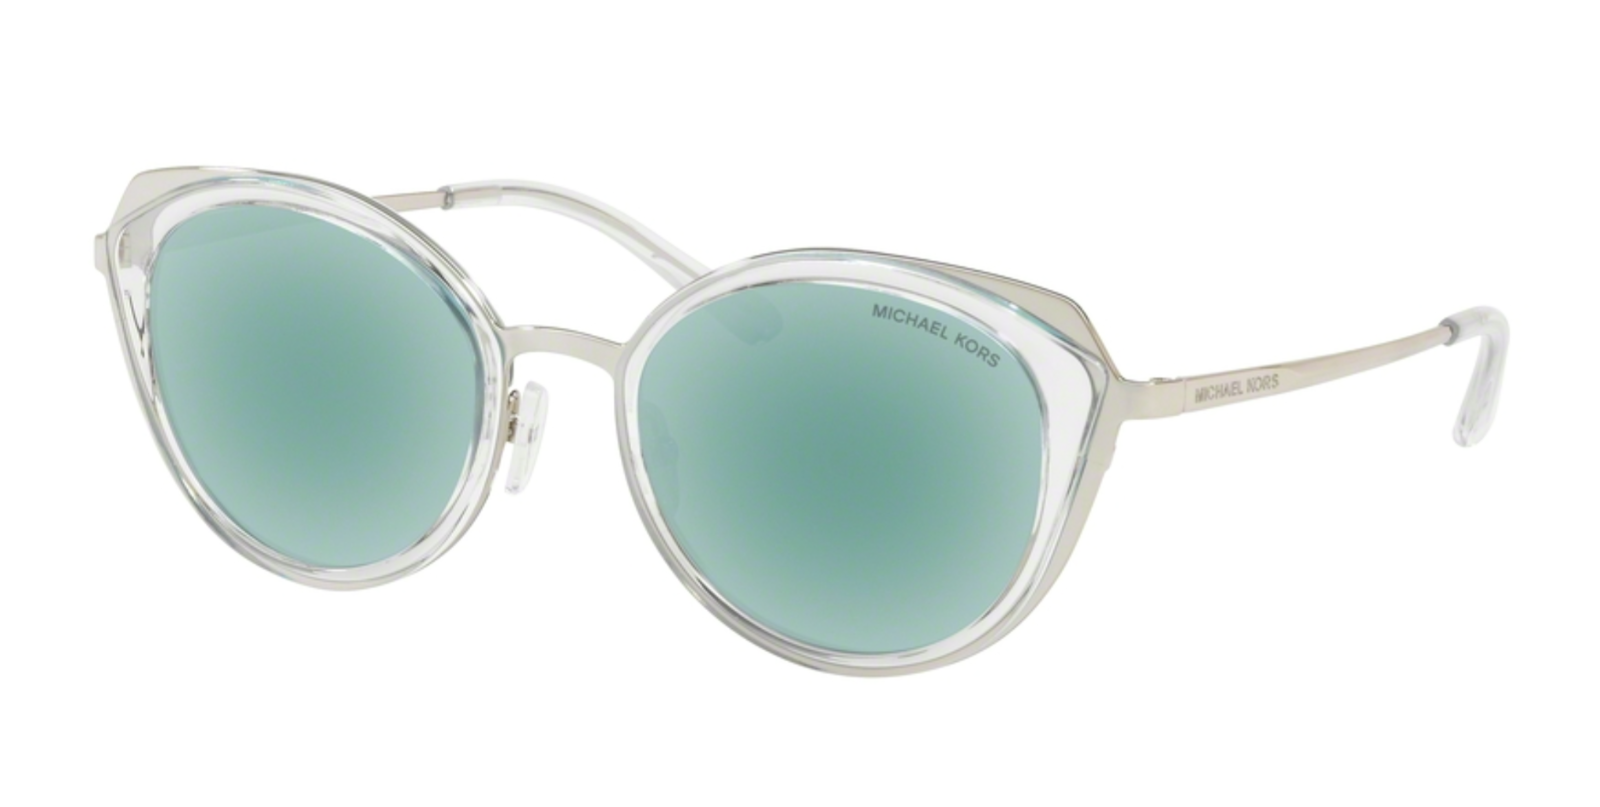 MICHAEL KORS Sunglasses CHARLESTON MK 1029 113725 Clear & Silver w/ Teal Mirror